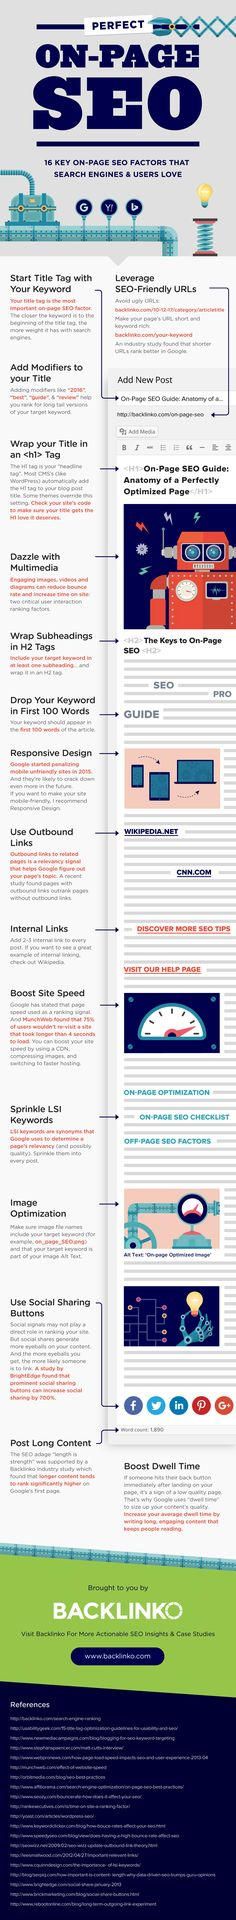 on page seo infographic version 3